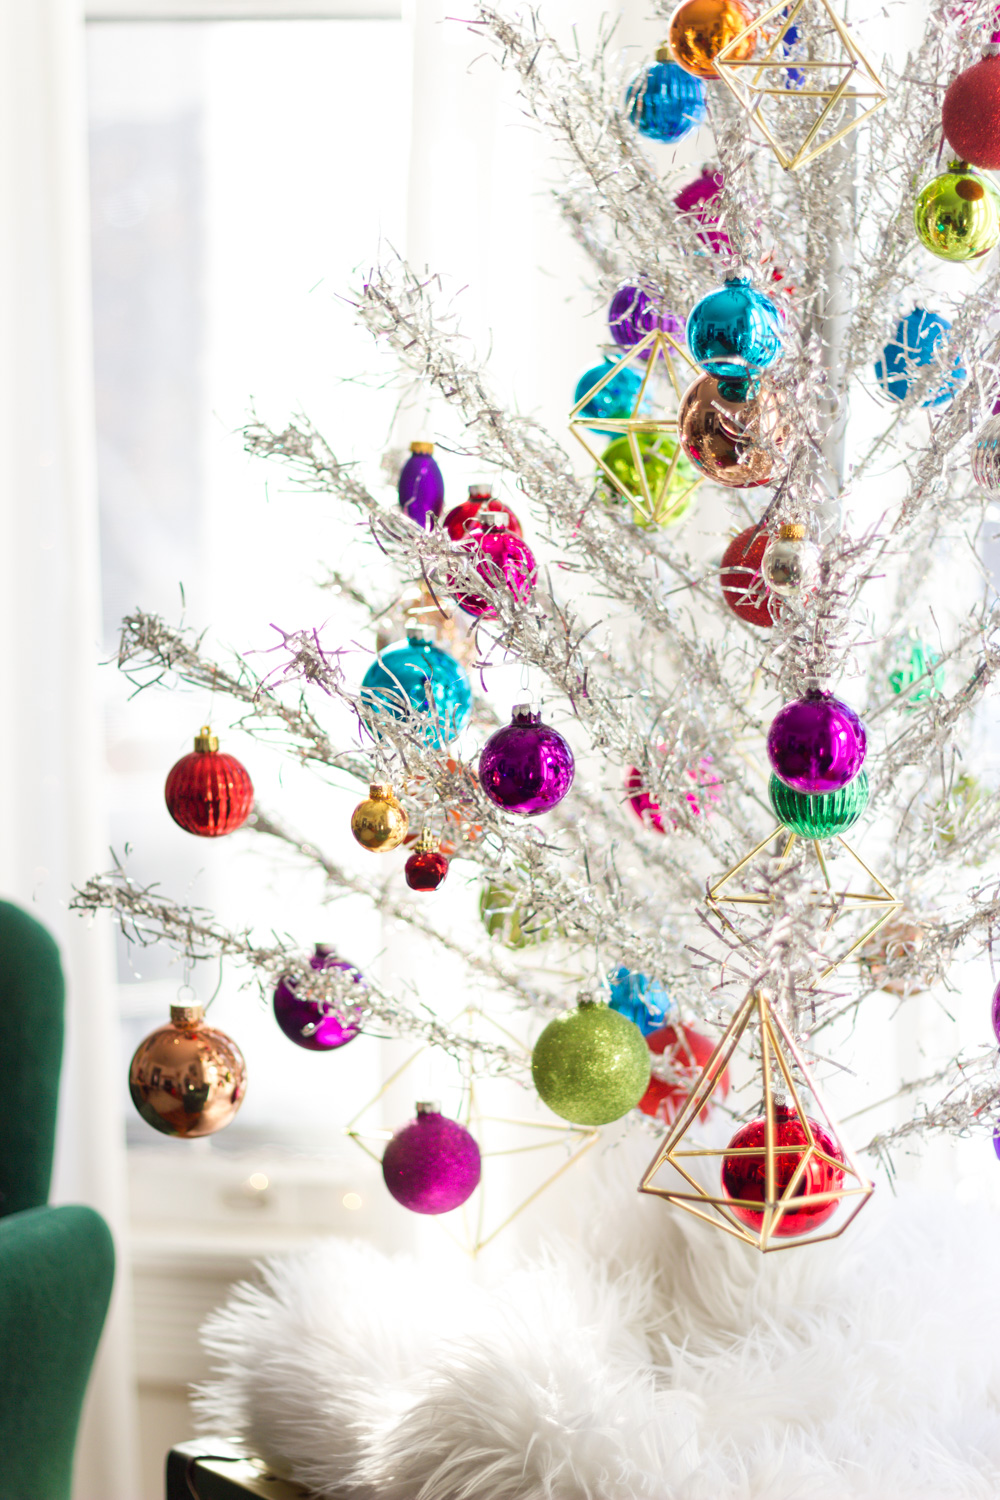 vintage silver aluminum Christmas tree with colorful ornaments